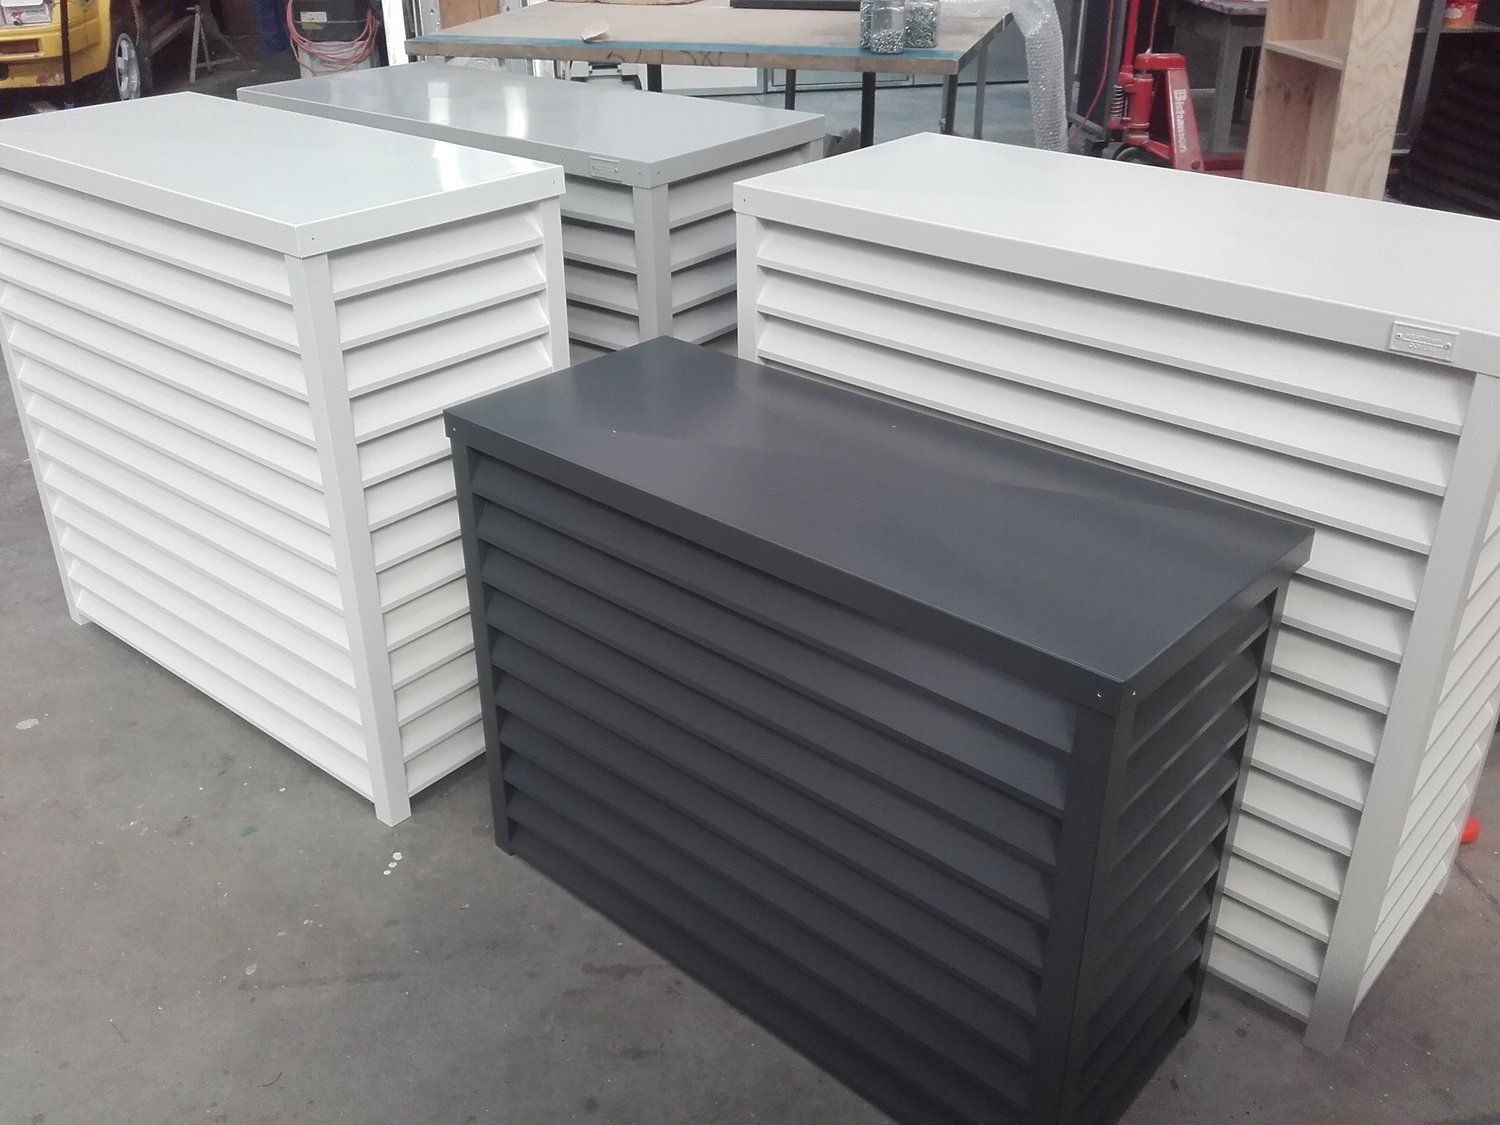 Products — Heatpump Covers in 2020 Heat pump cover, Air